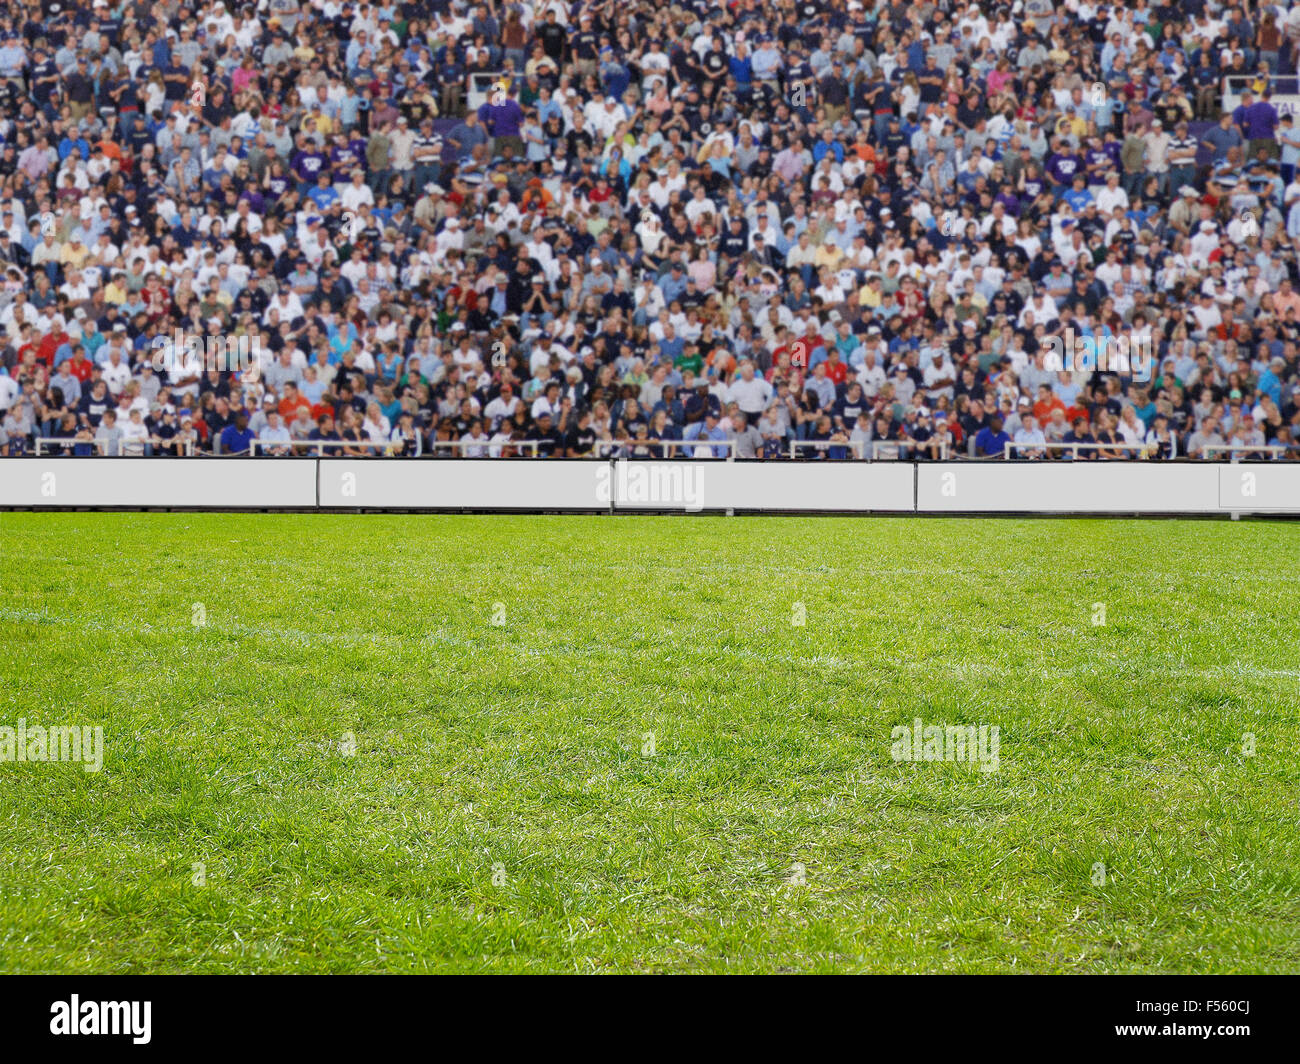 crowd watching a game on grass in a stadion - Stock Image